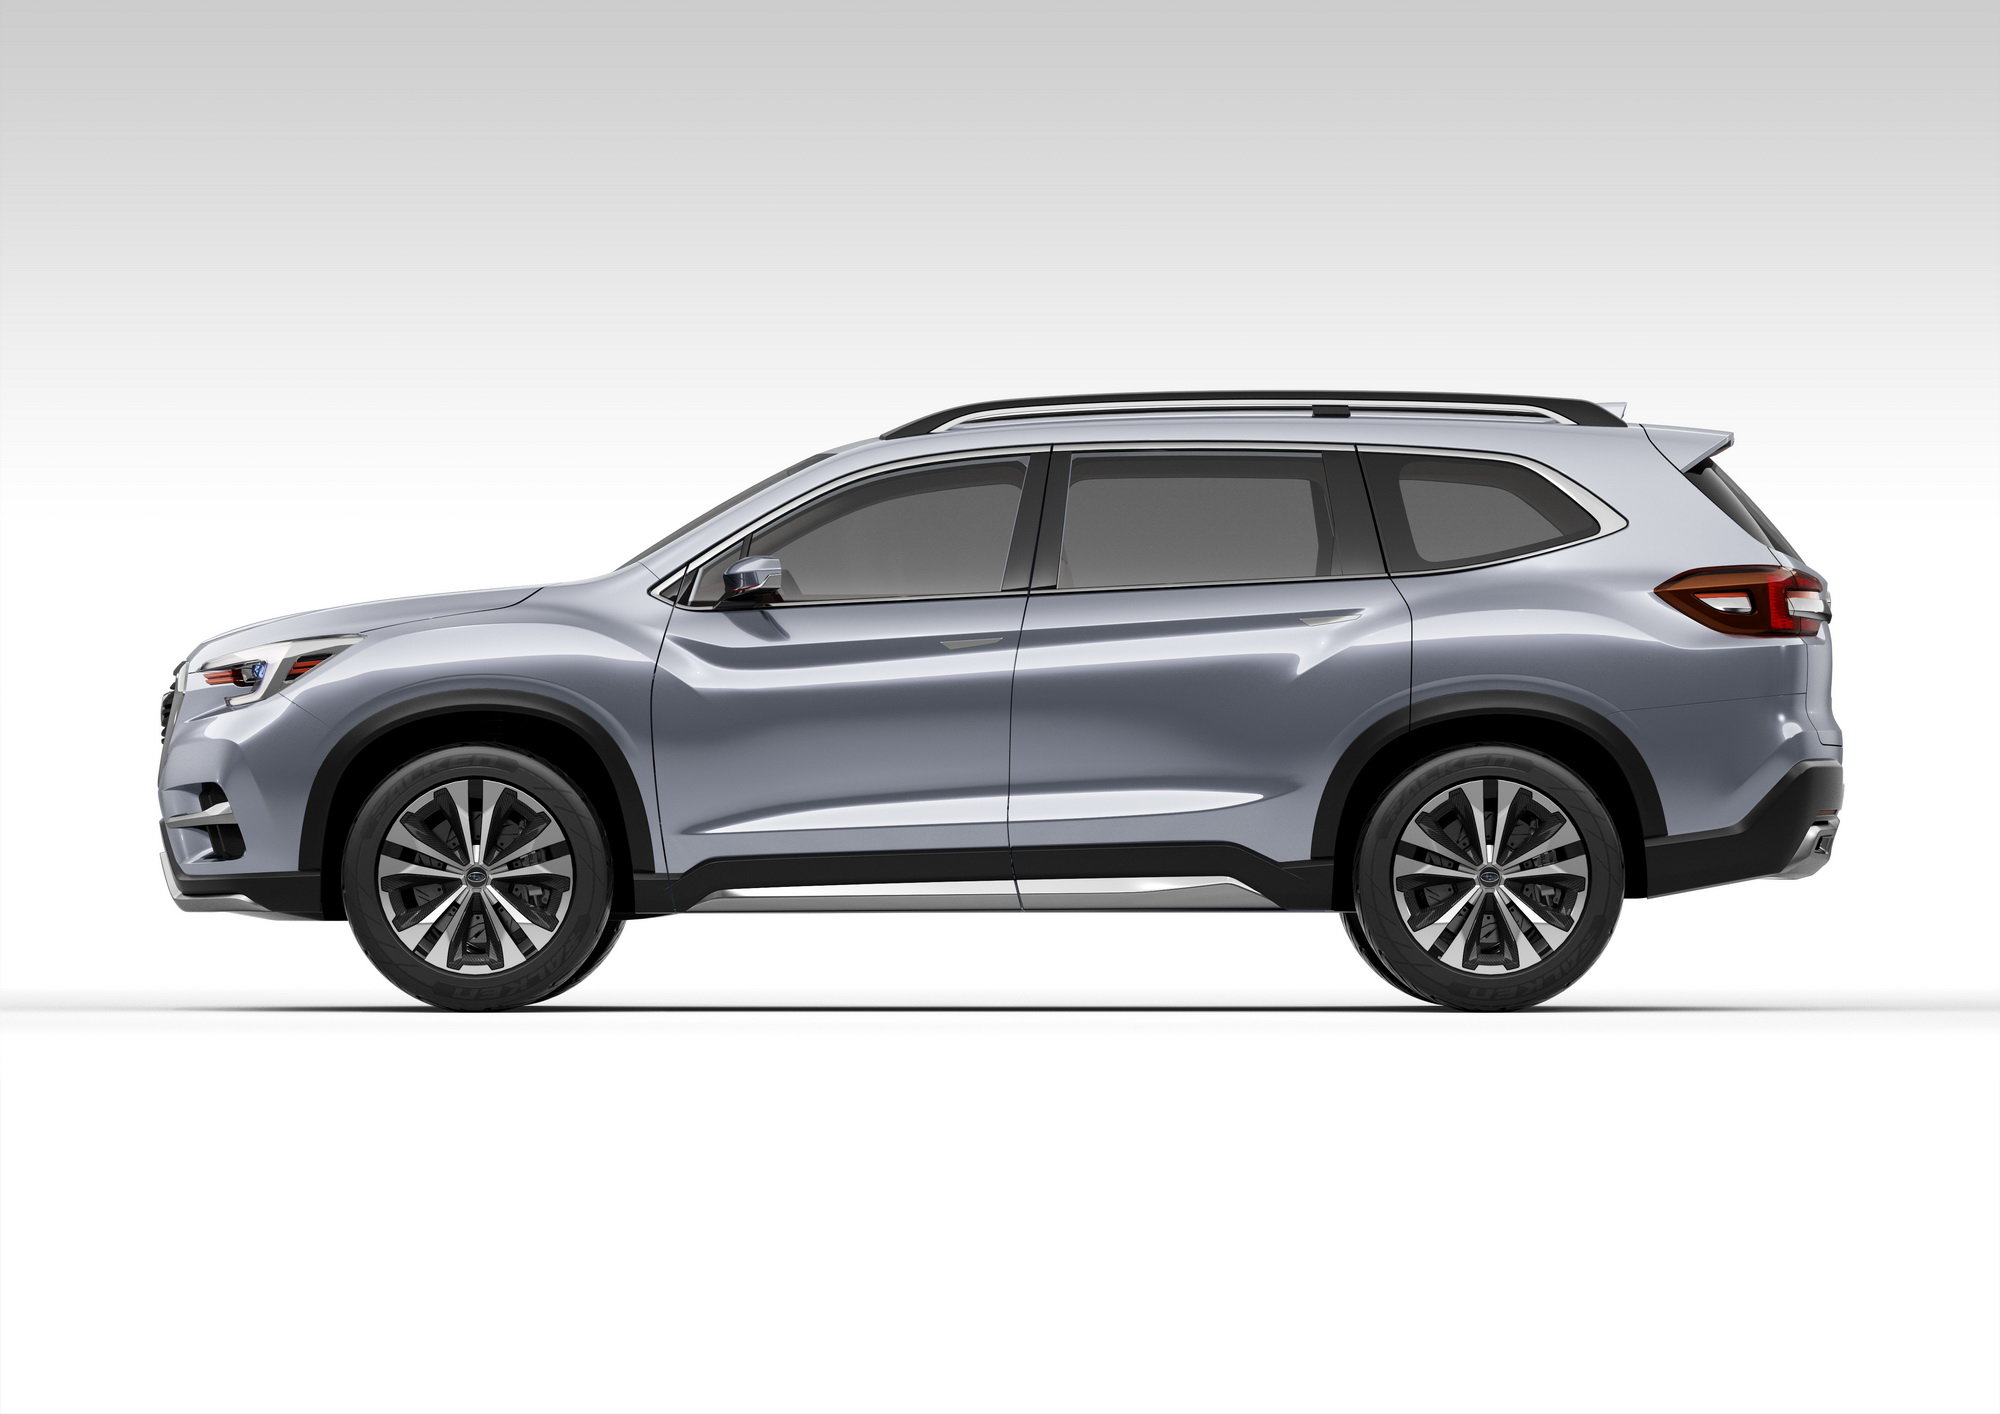 2018 subaru ascent suv. modren subaru subaru ascent throughout 2018 subaru ascent suv t